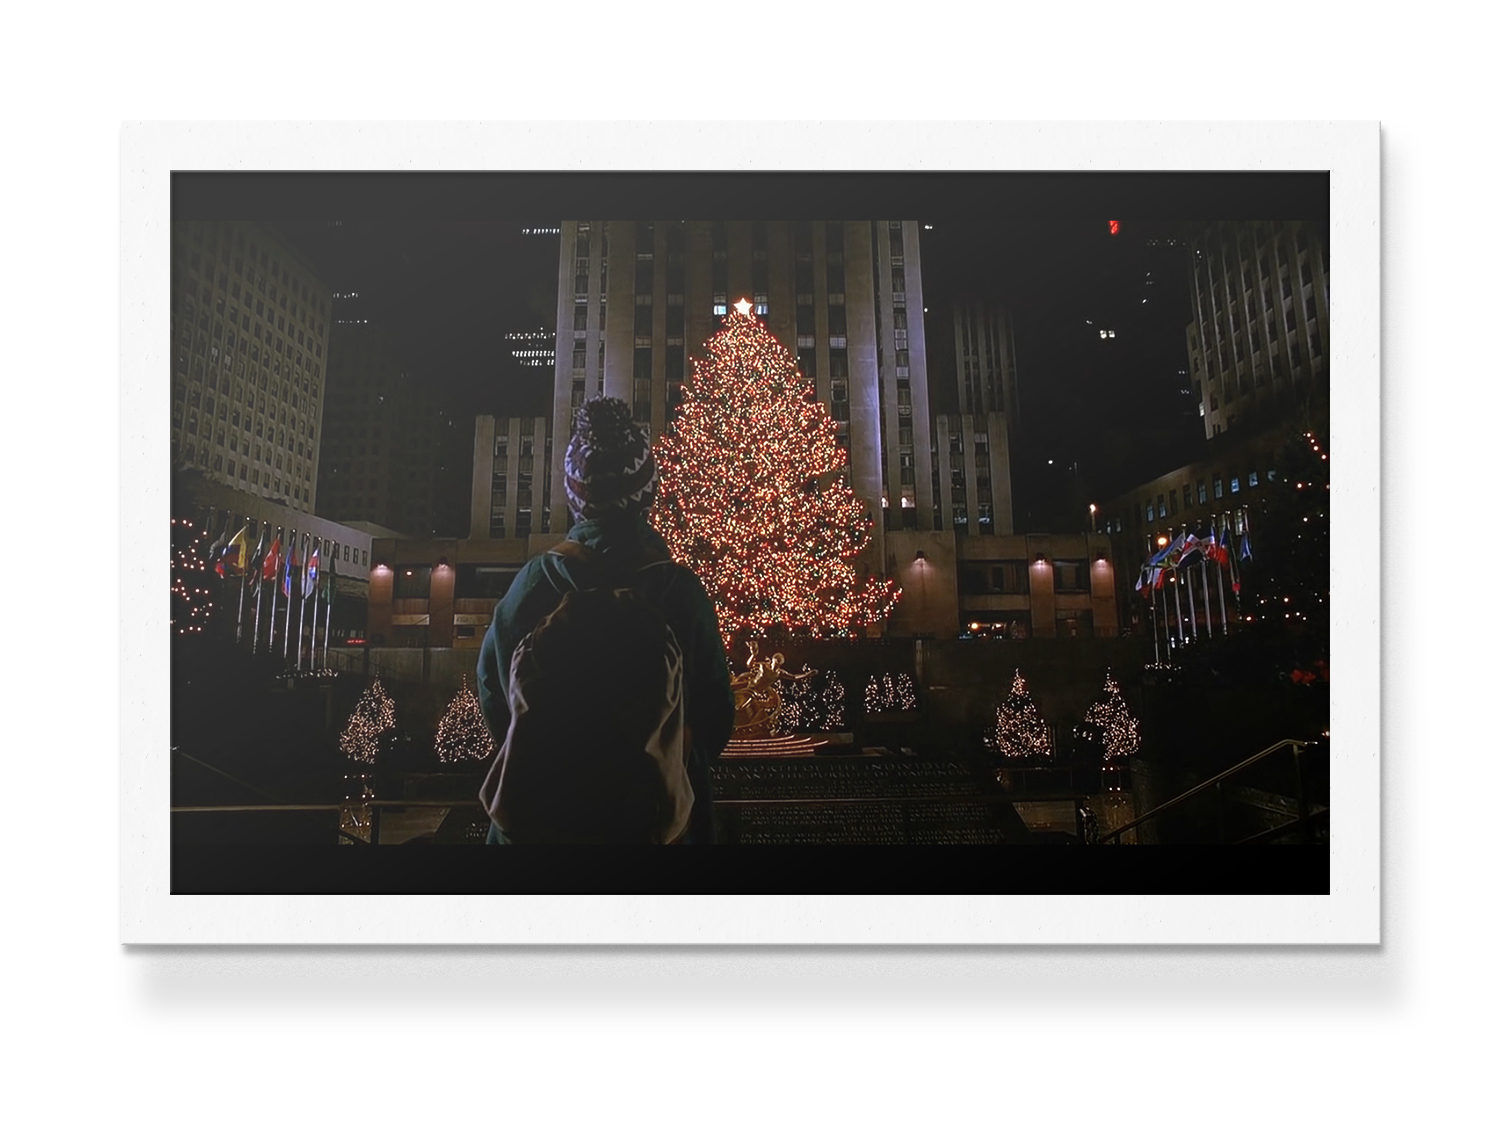 Photo de Kevin dans Maman, j'ai encore raté l'avion, à New-York, devant le sapin de Noël du Rockefeller Center.